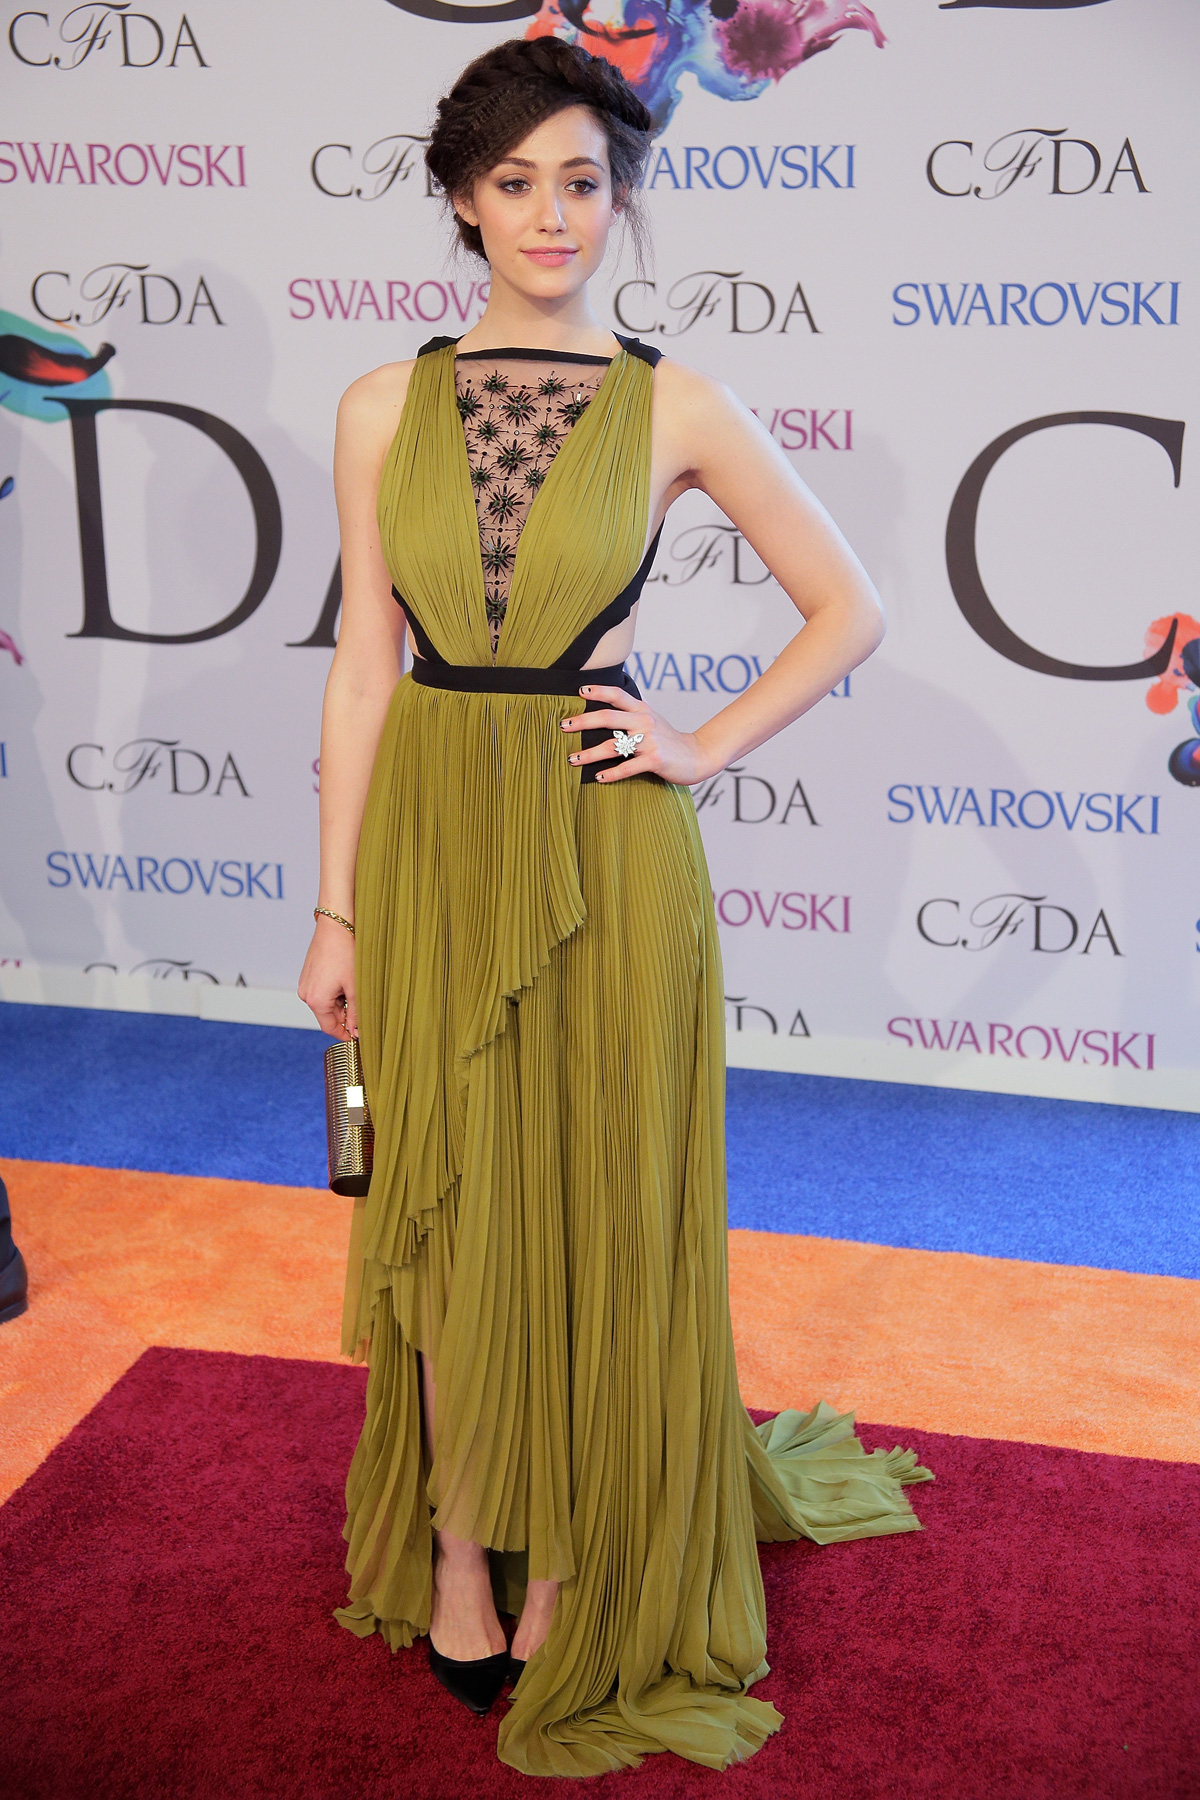 Emmy Rossum at the 2014 CFDA